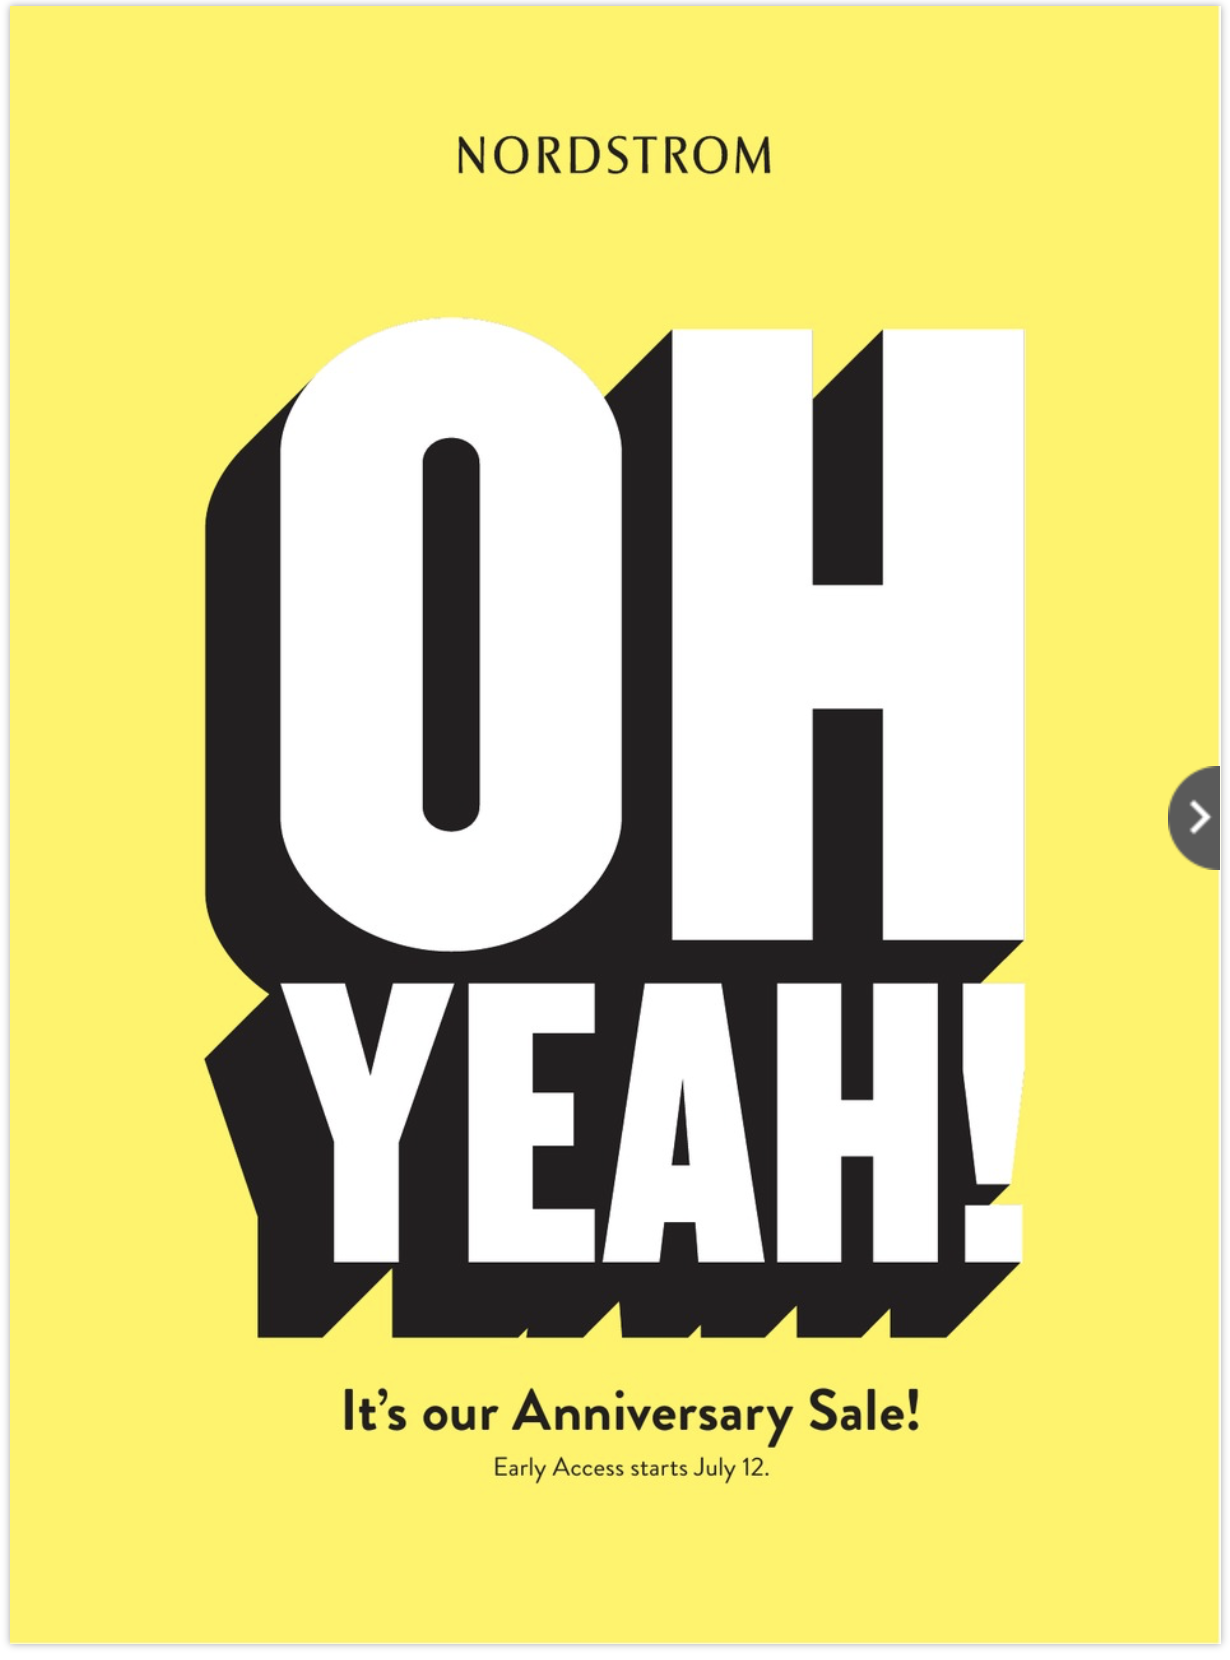 Nordstrom Anniversary Sale First Look!